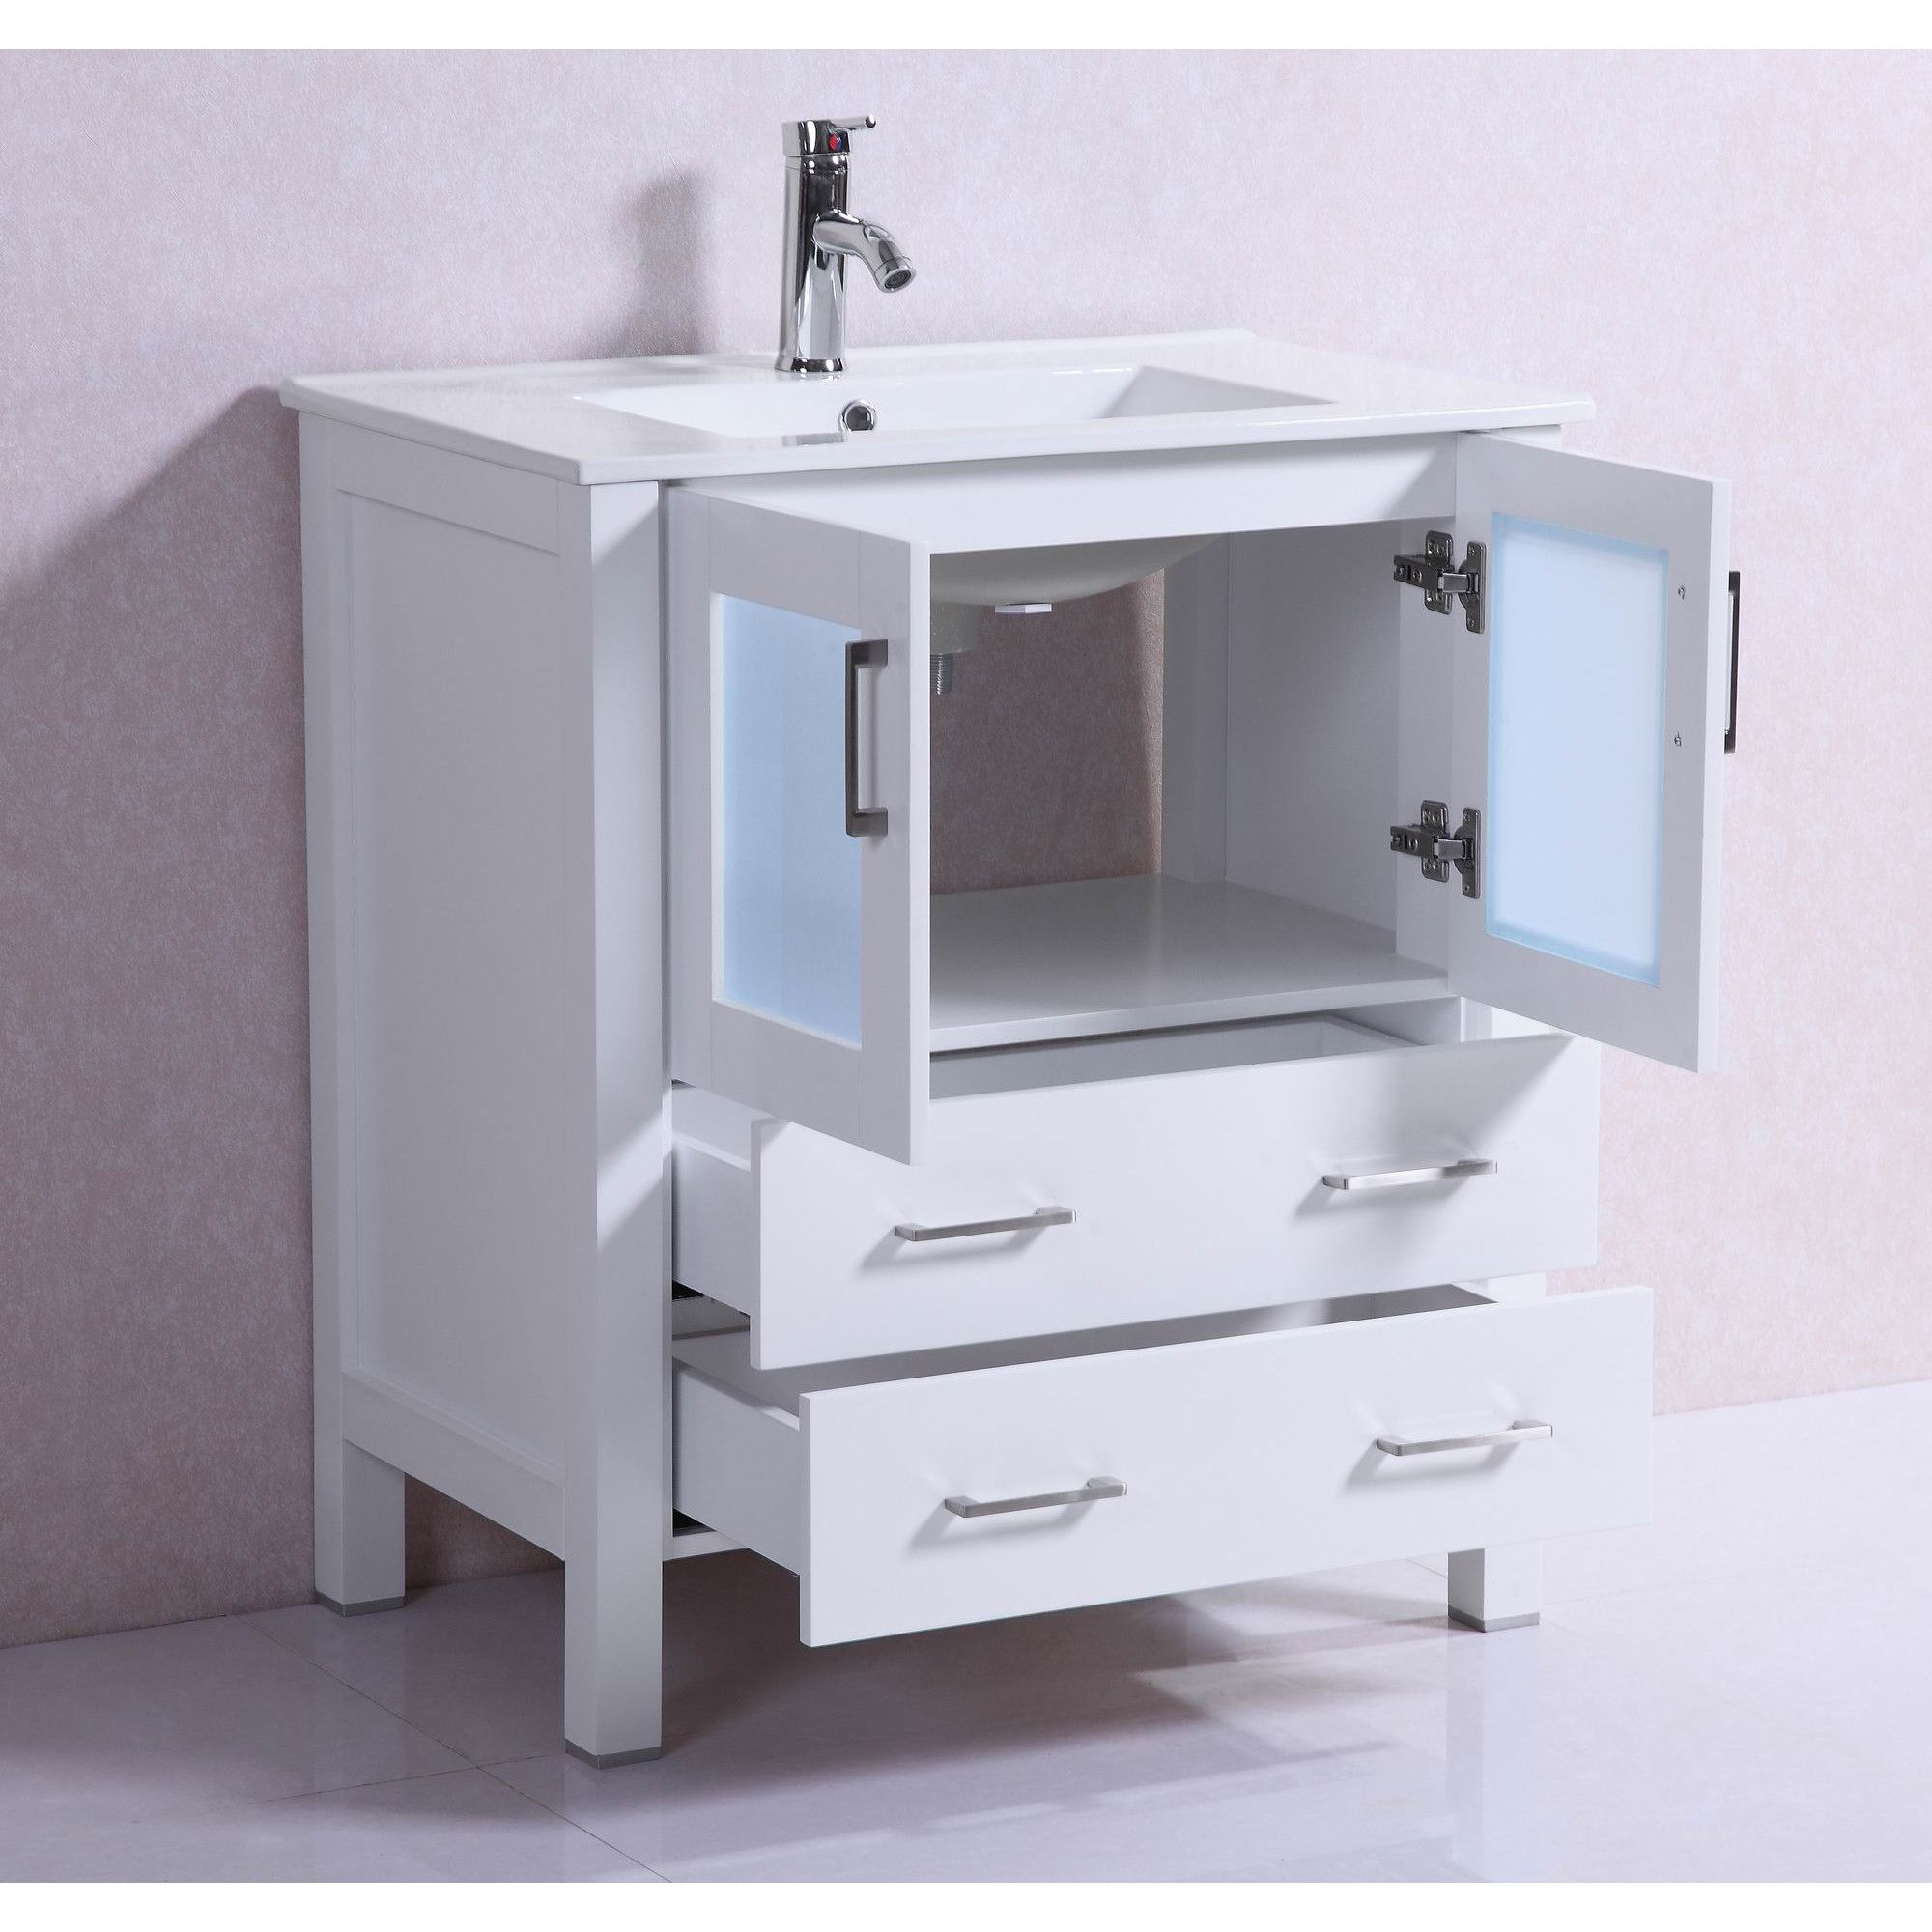 modern bathroom cabinet doors. Modern Freestanding 30\ Bathroom Cabinet Doors E